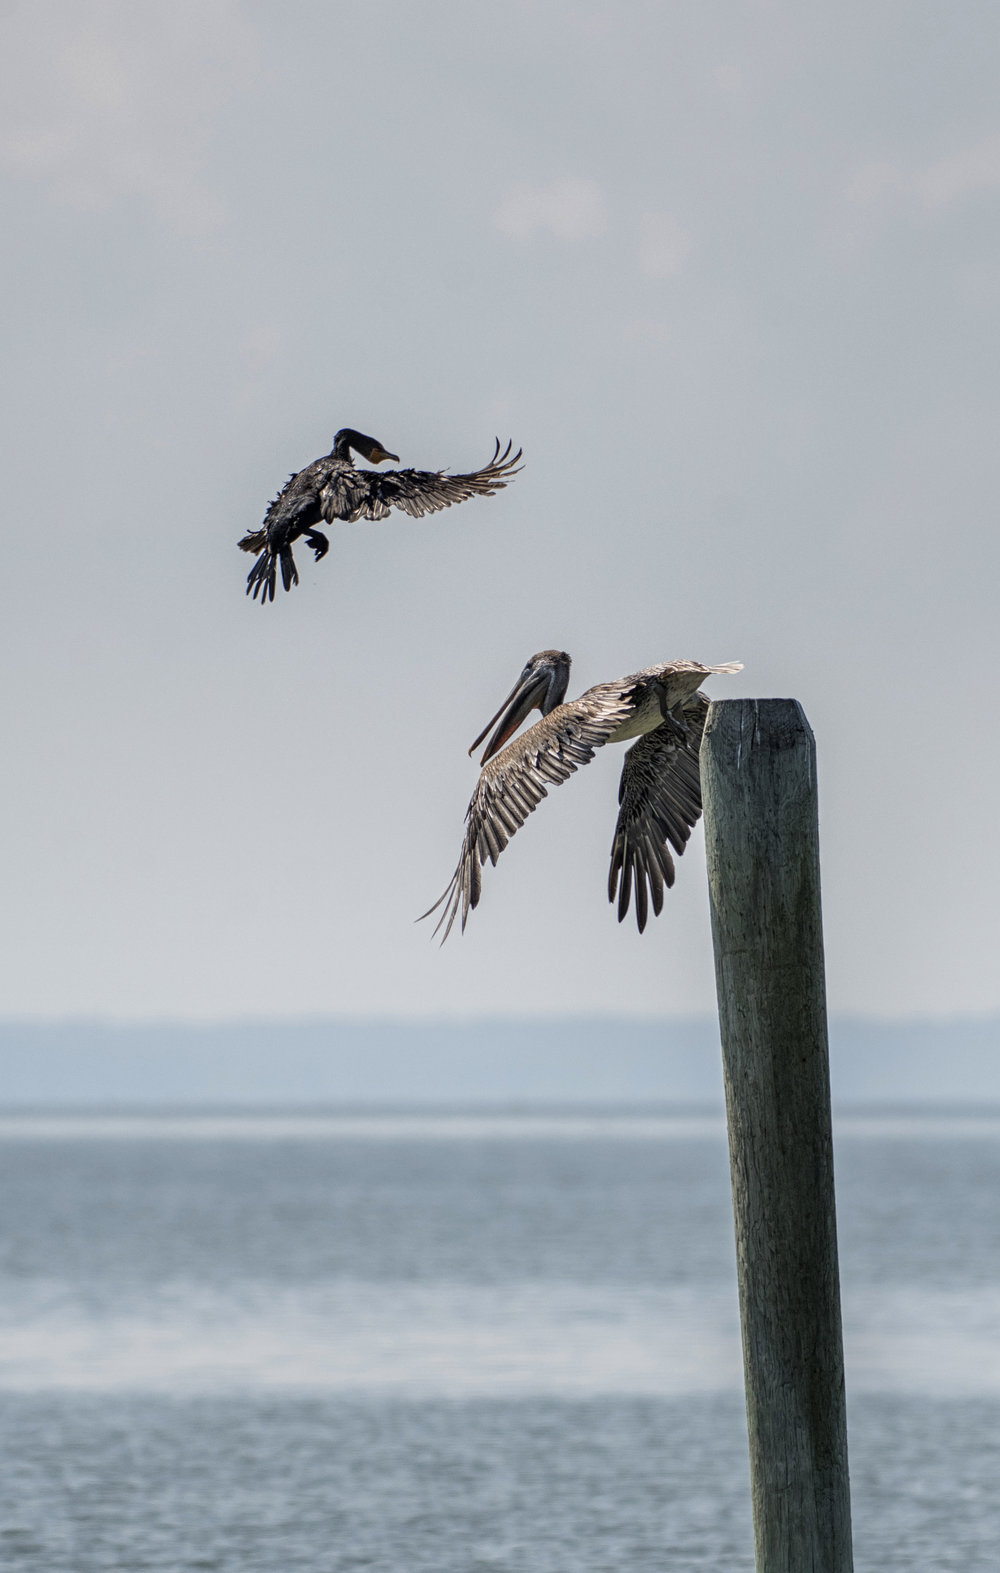 Brown Pelican and Cormorant fighting for piling